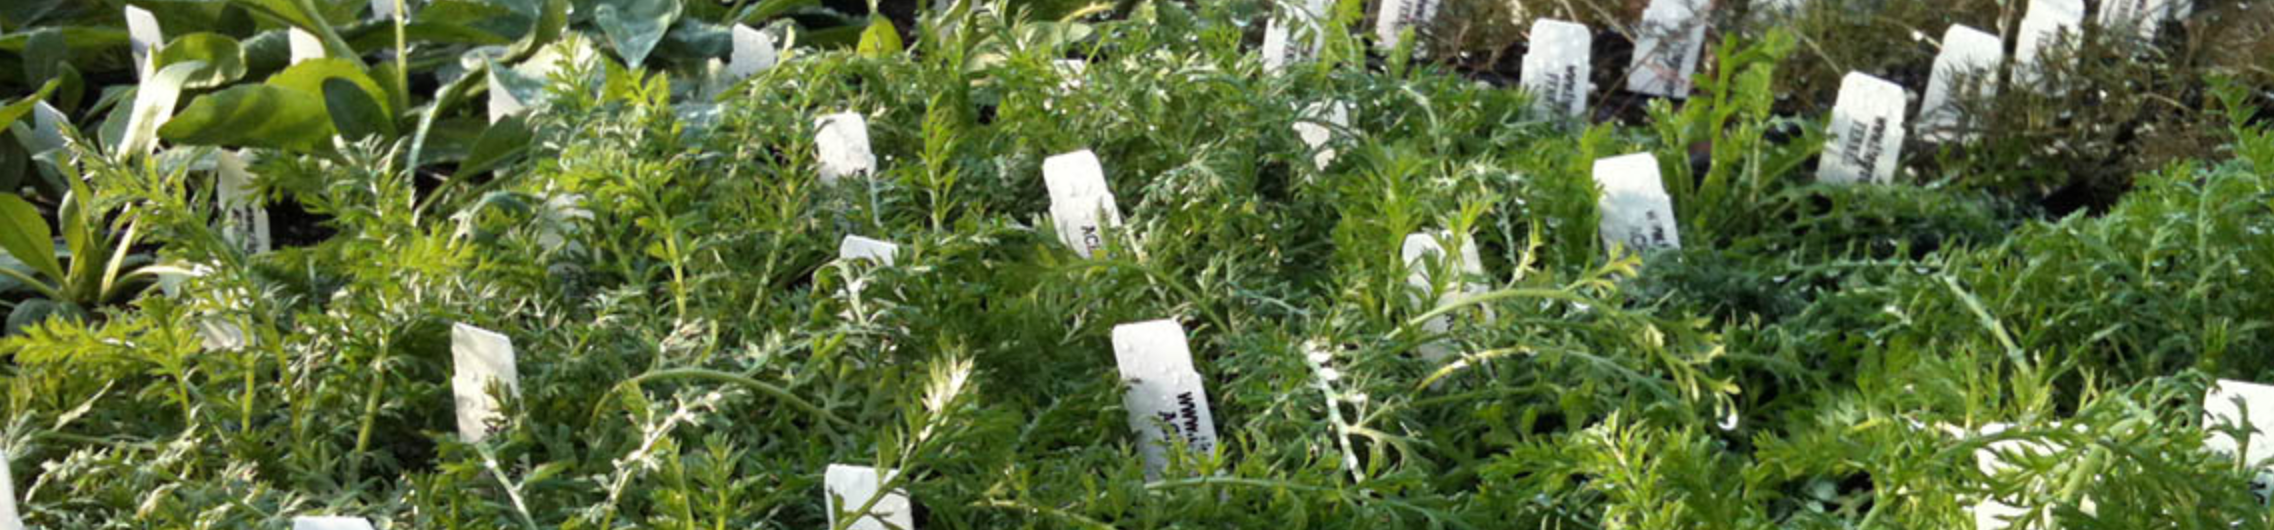 Bulk Discount on Herb Plants